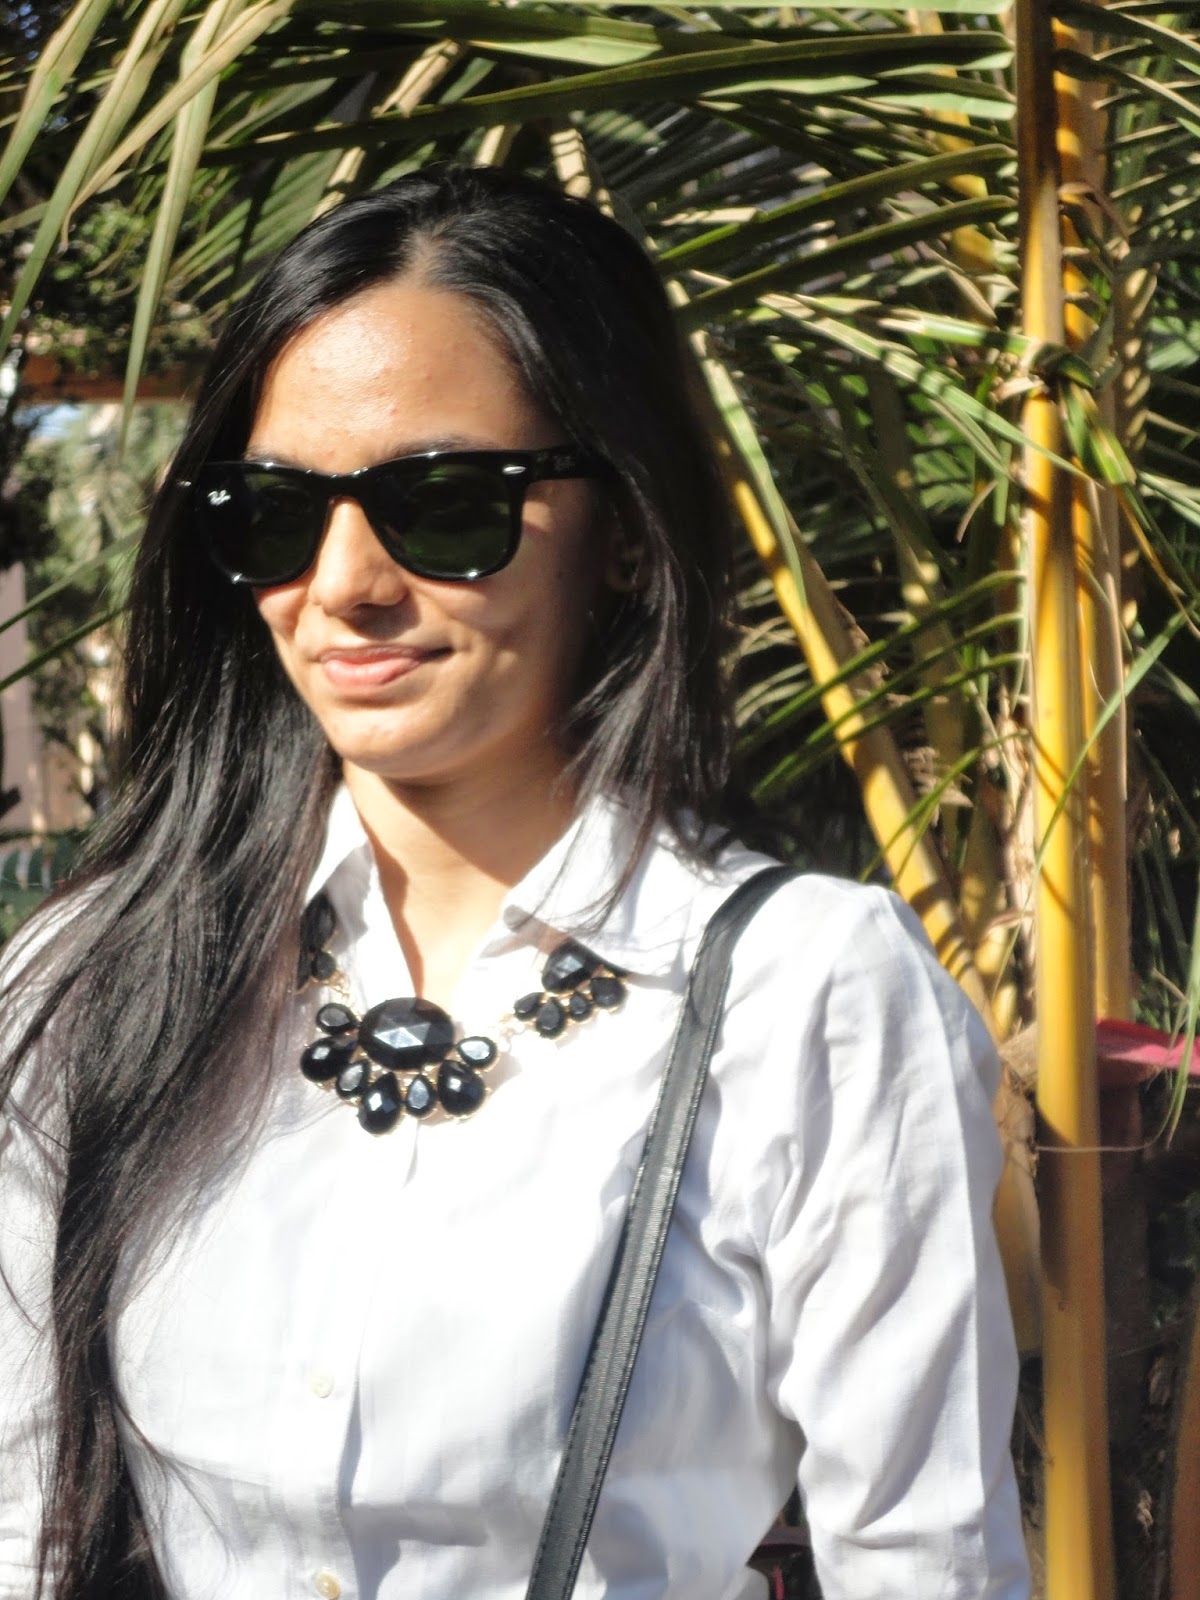 sunglasses, folding ray bans, wayfareres, workwear, satchel bag, pinstripes, statement jewellery, everyday mumbai street style